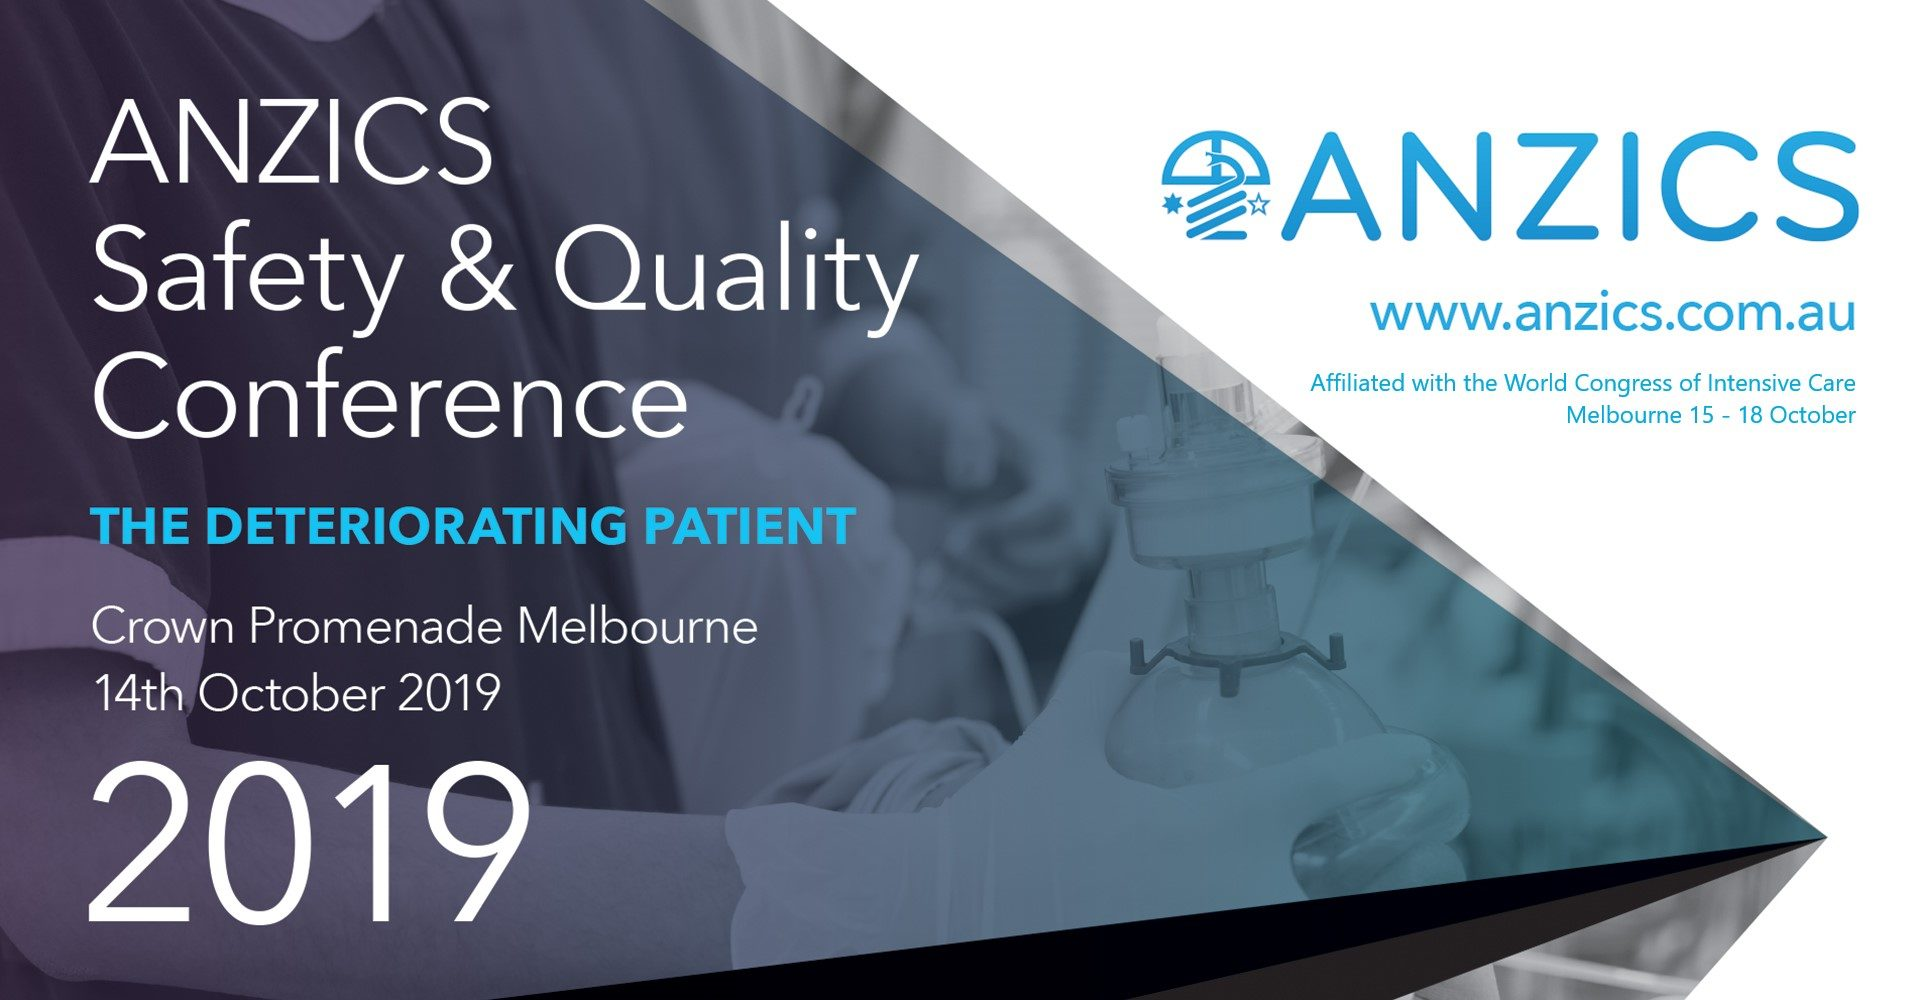 Banner 3 – Safety & Quality 2019